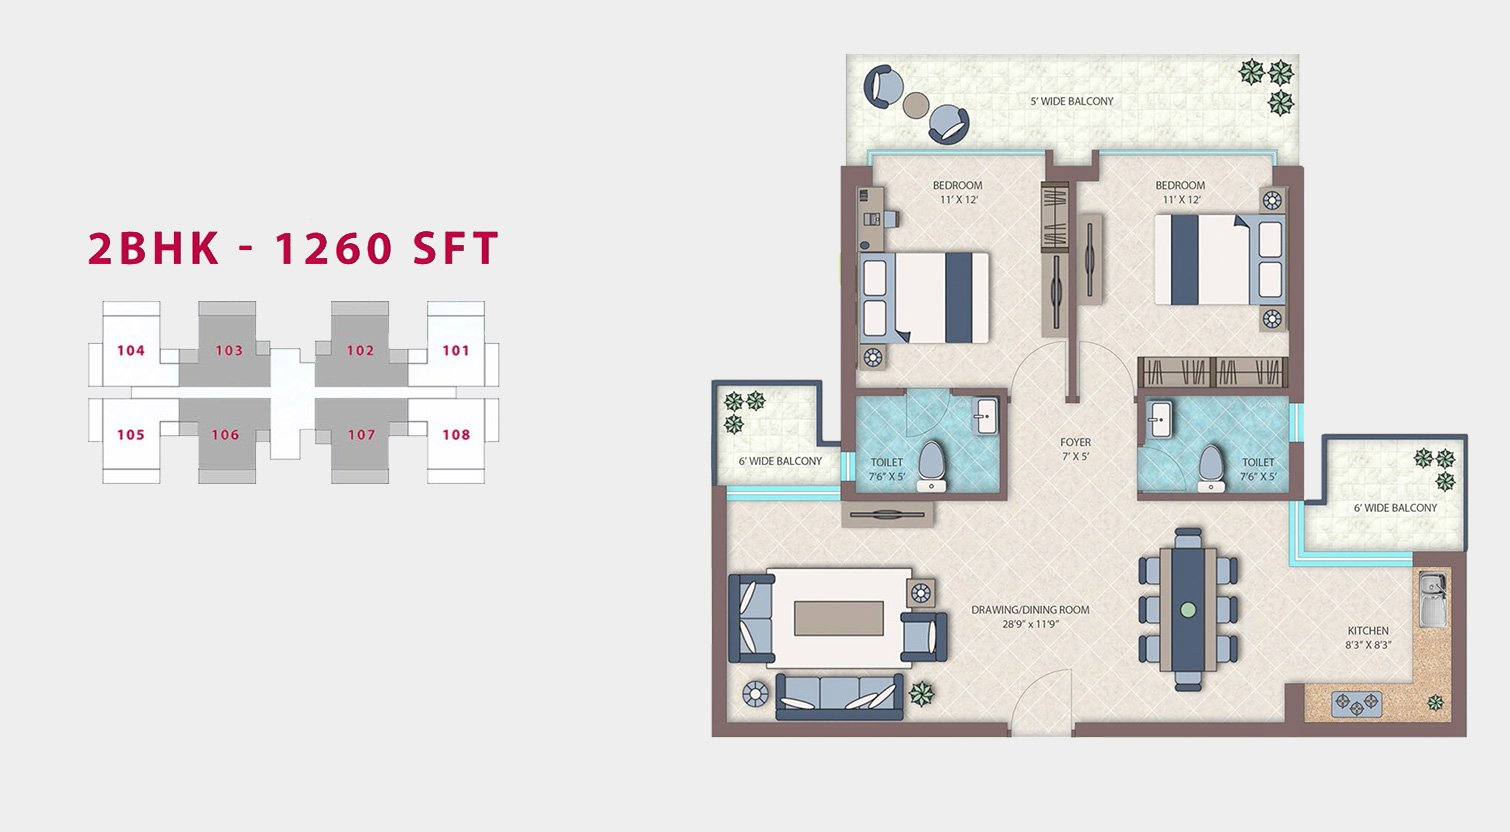 Emerald Heights 2bhk 1260sft Floor Plan